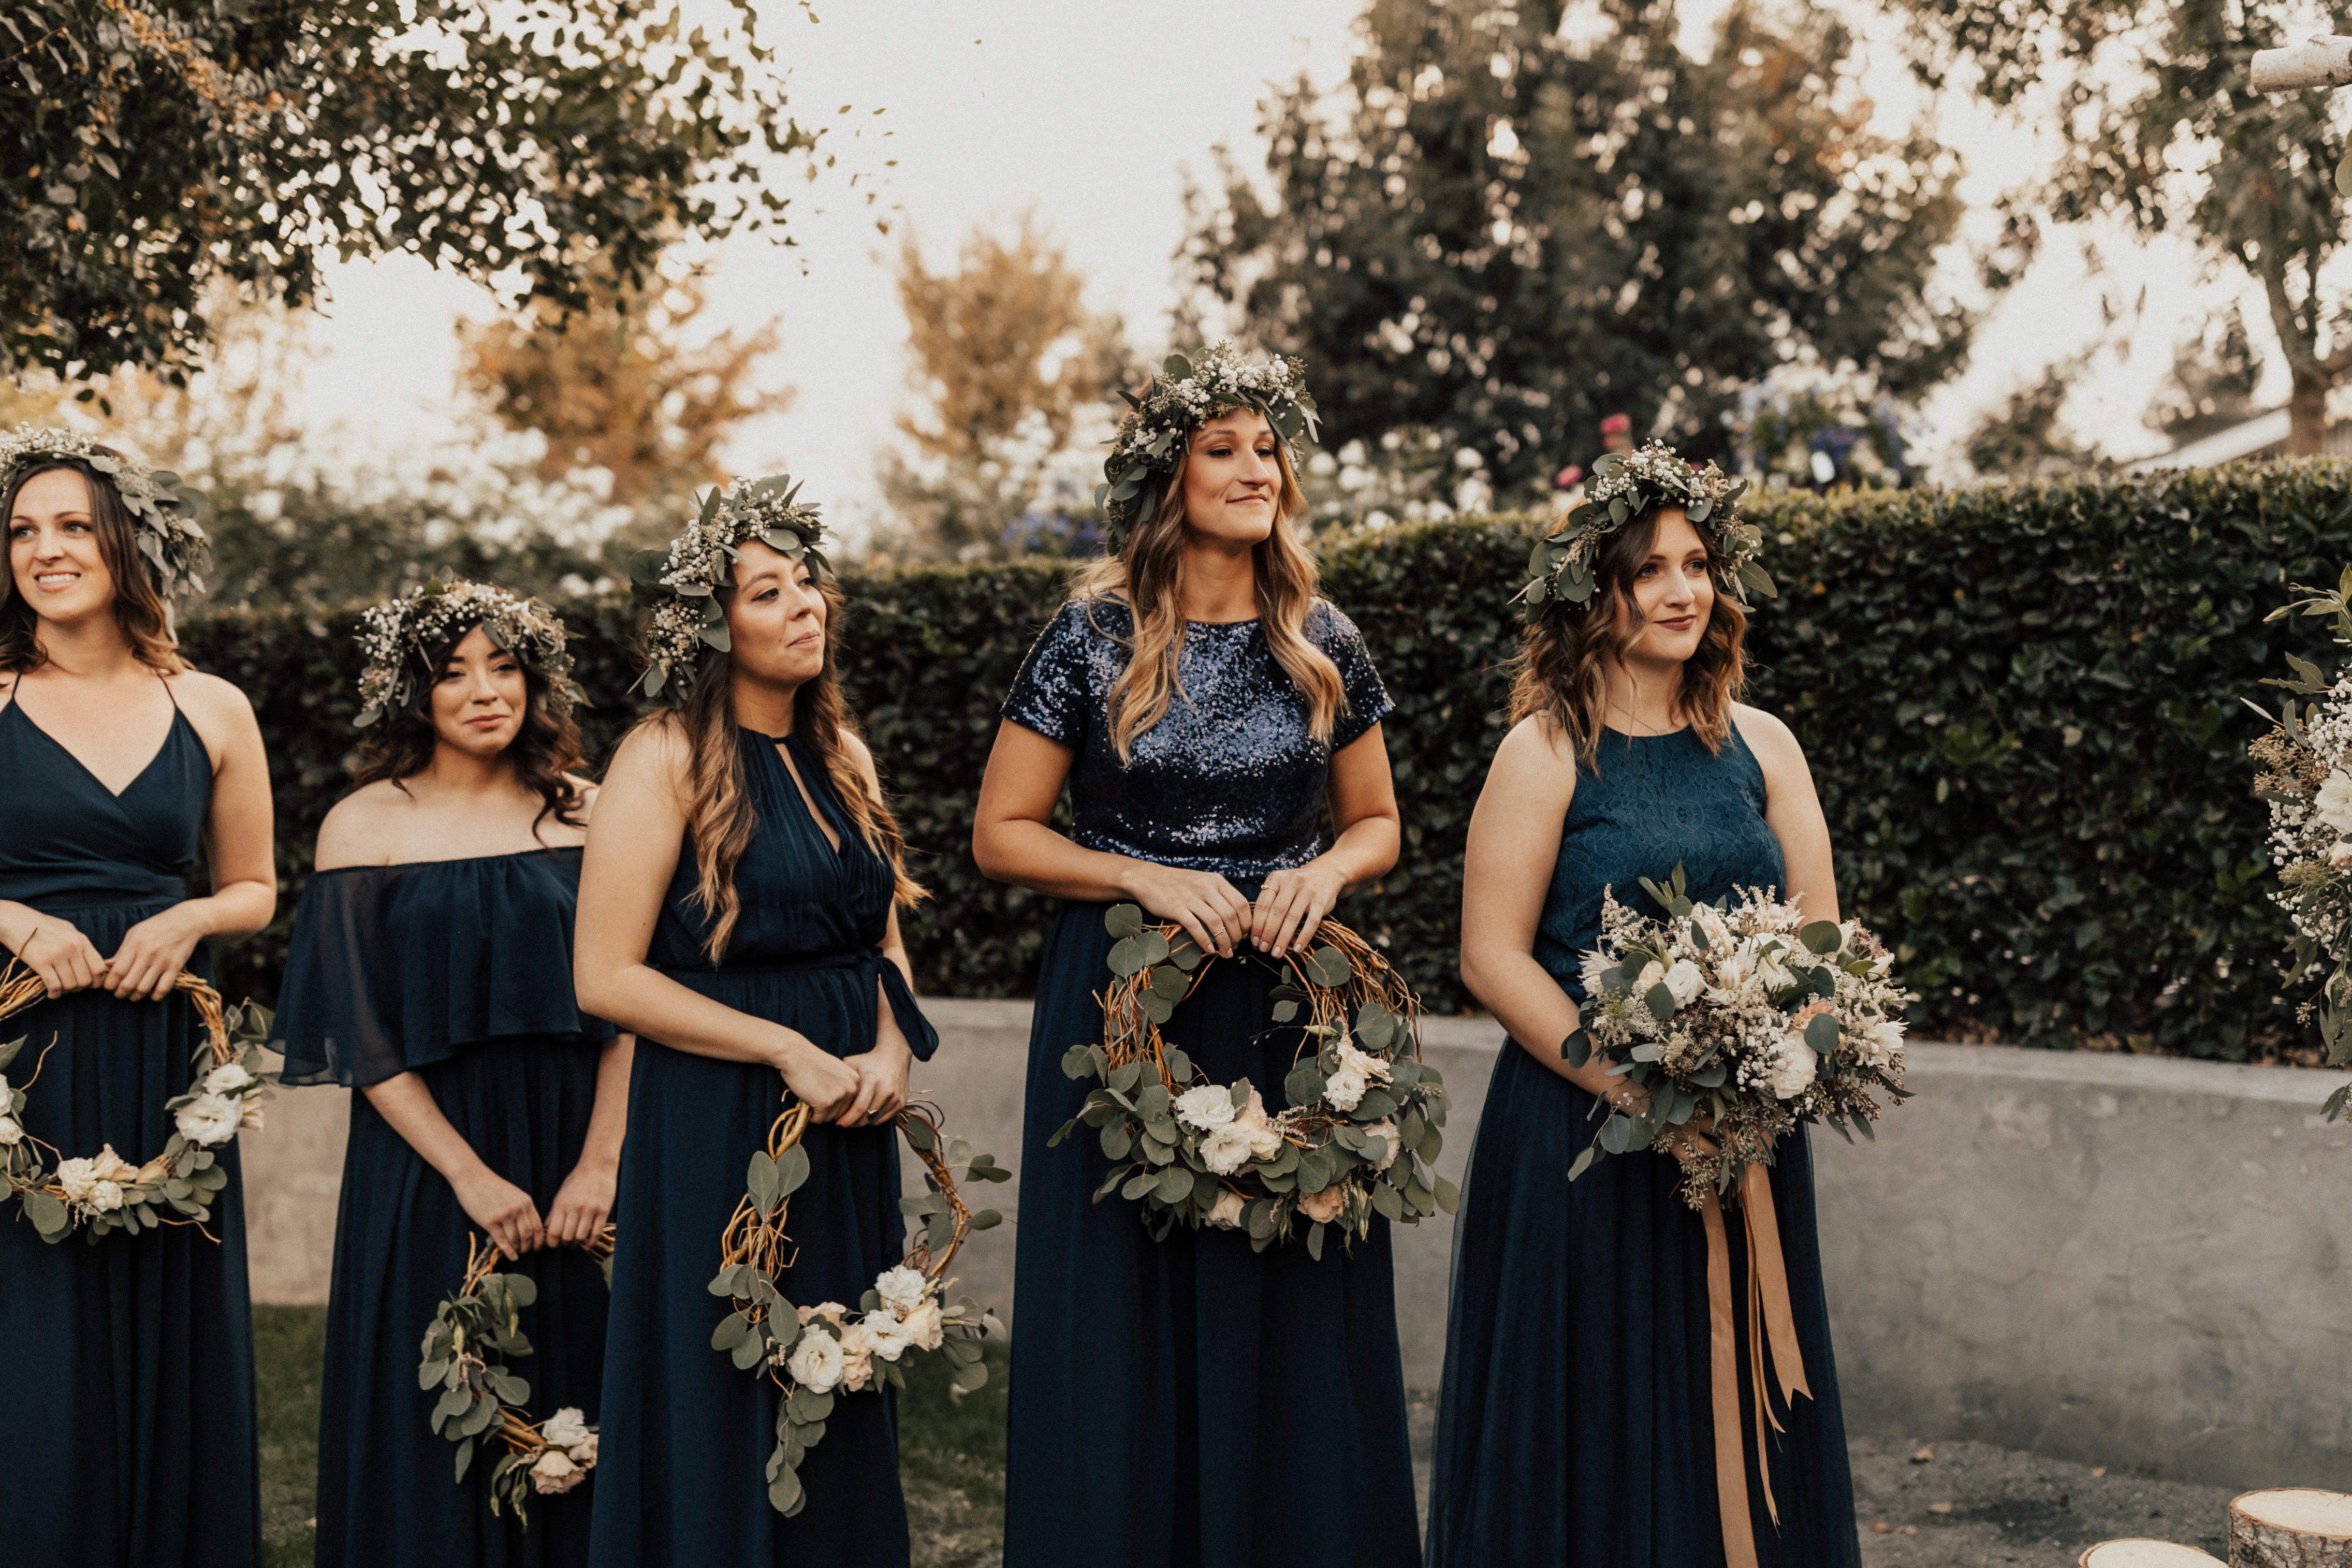 mix and match navy chiffon and navy sequin bridesmaid dresses and separates holding wreath bouquets.